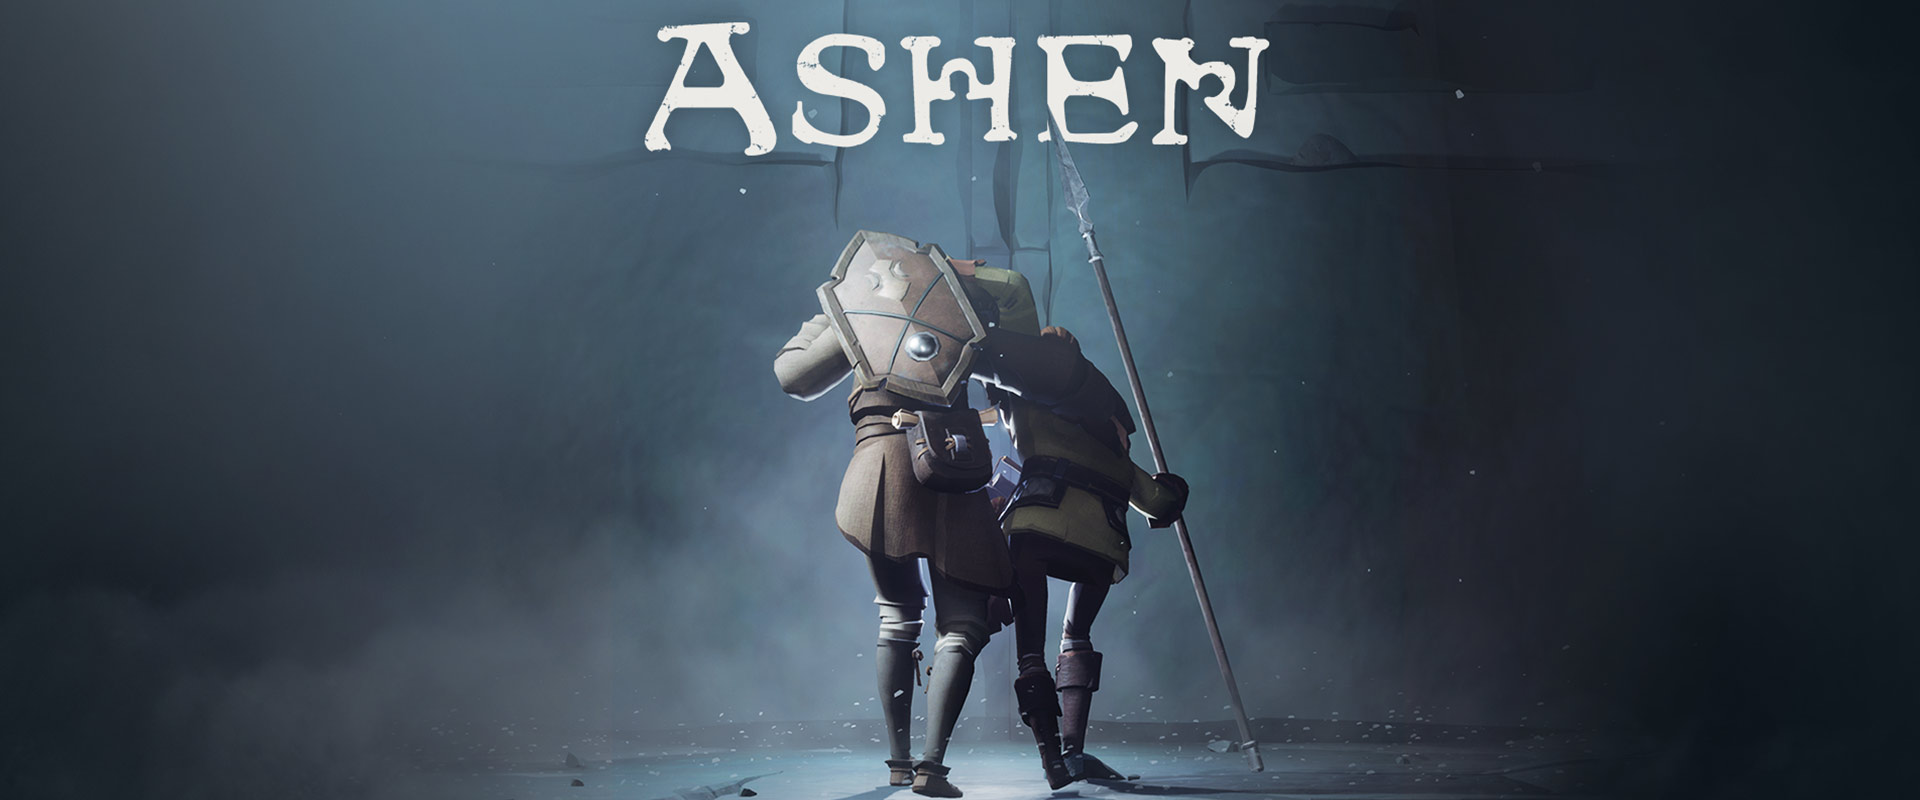 Ashen, Back view of two characters helping each other walk in a dank cave